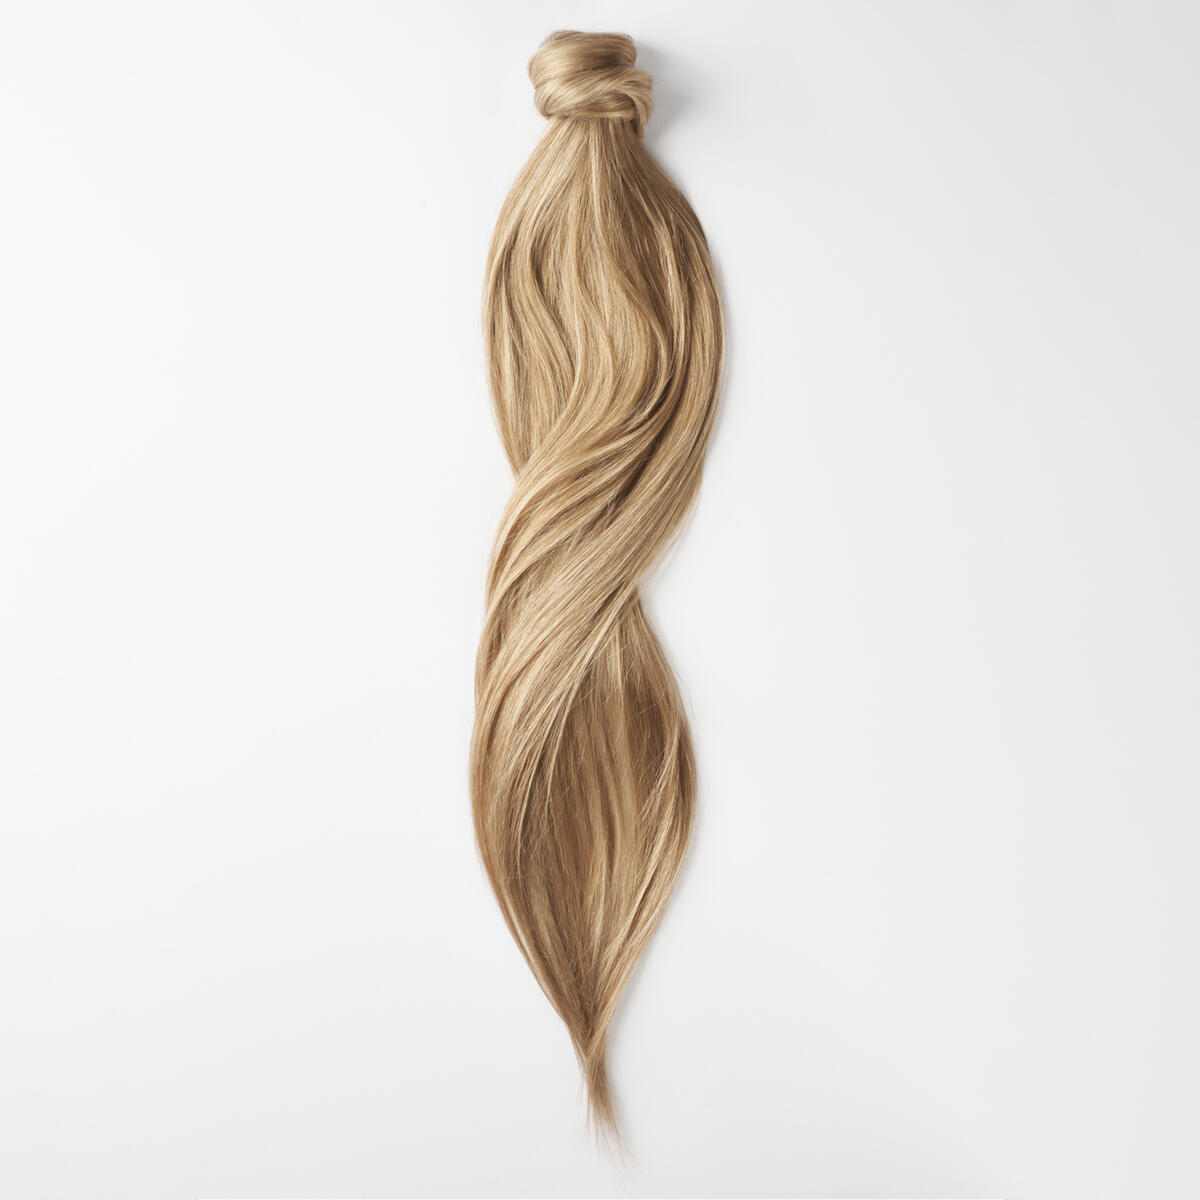 Clip-in Ponytail Ponytail made of real hair M7.3/10.8 Cendre Ash Blonde Mix 40 cm